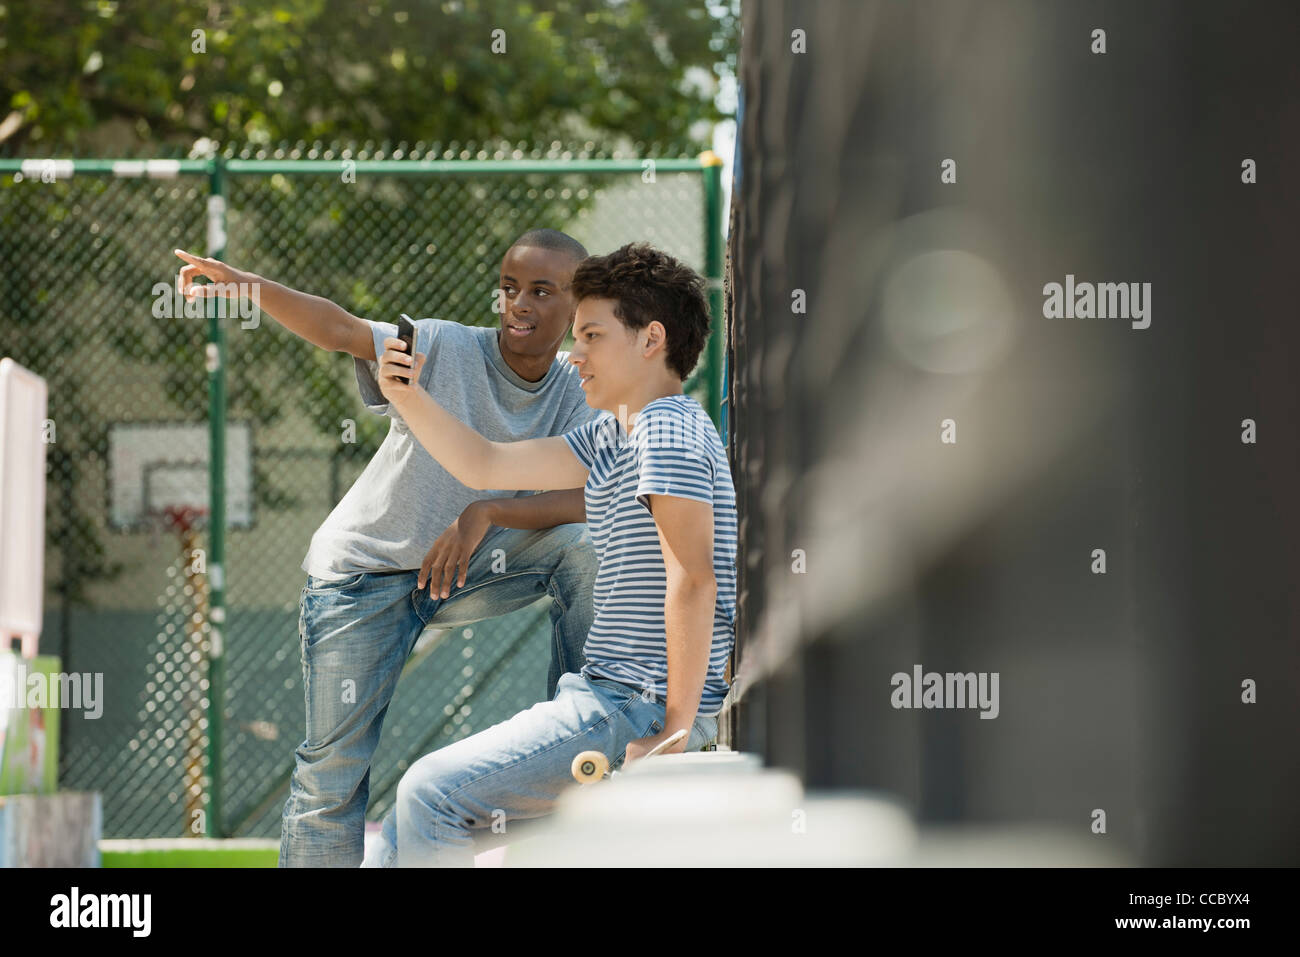 Young men - Stock Image